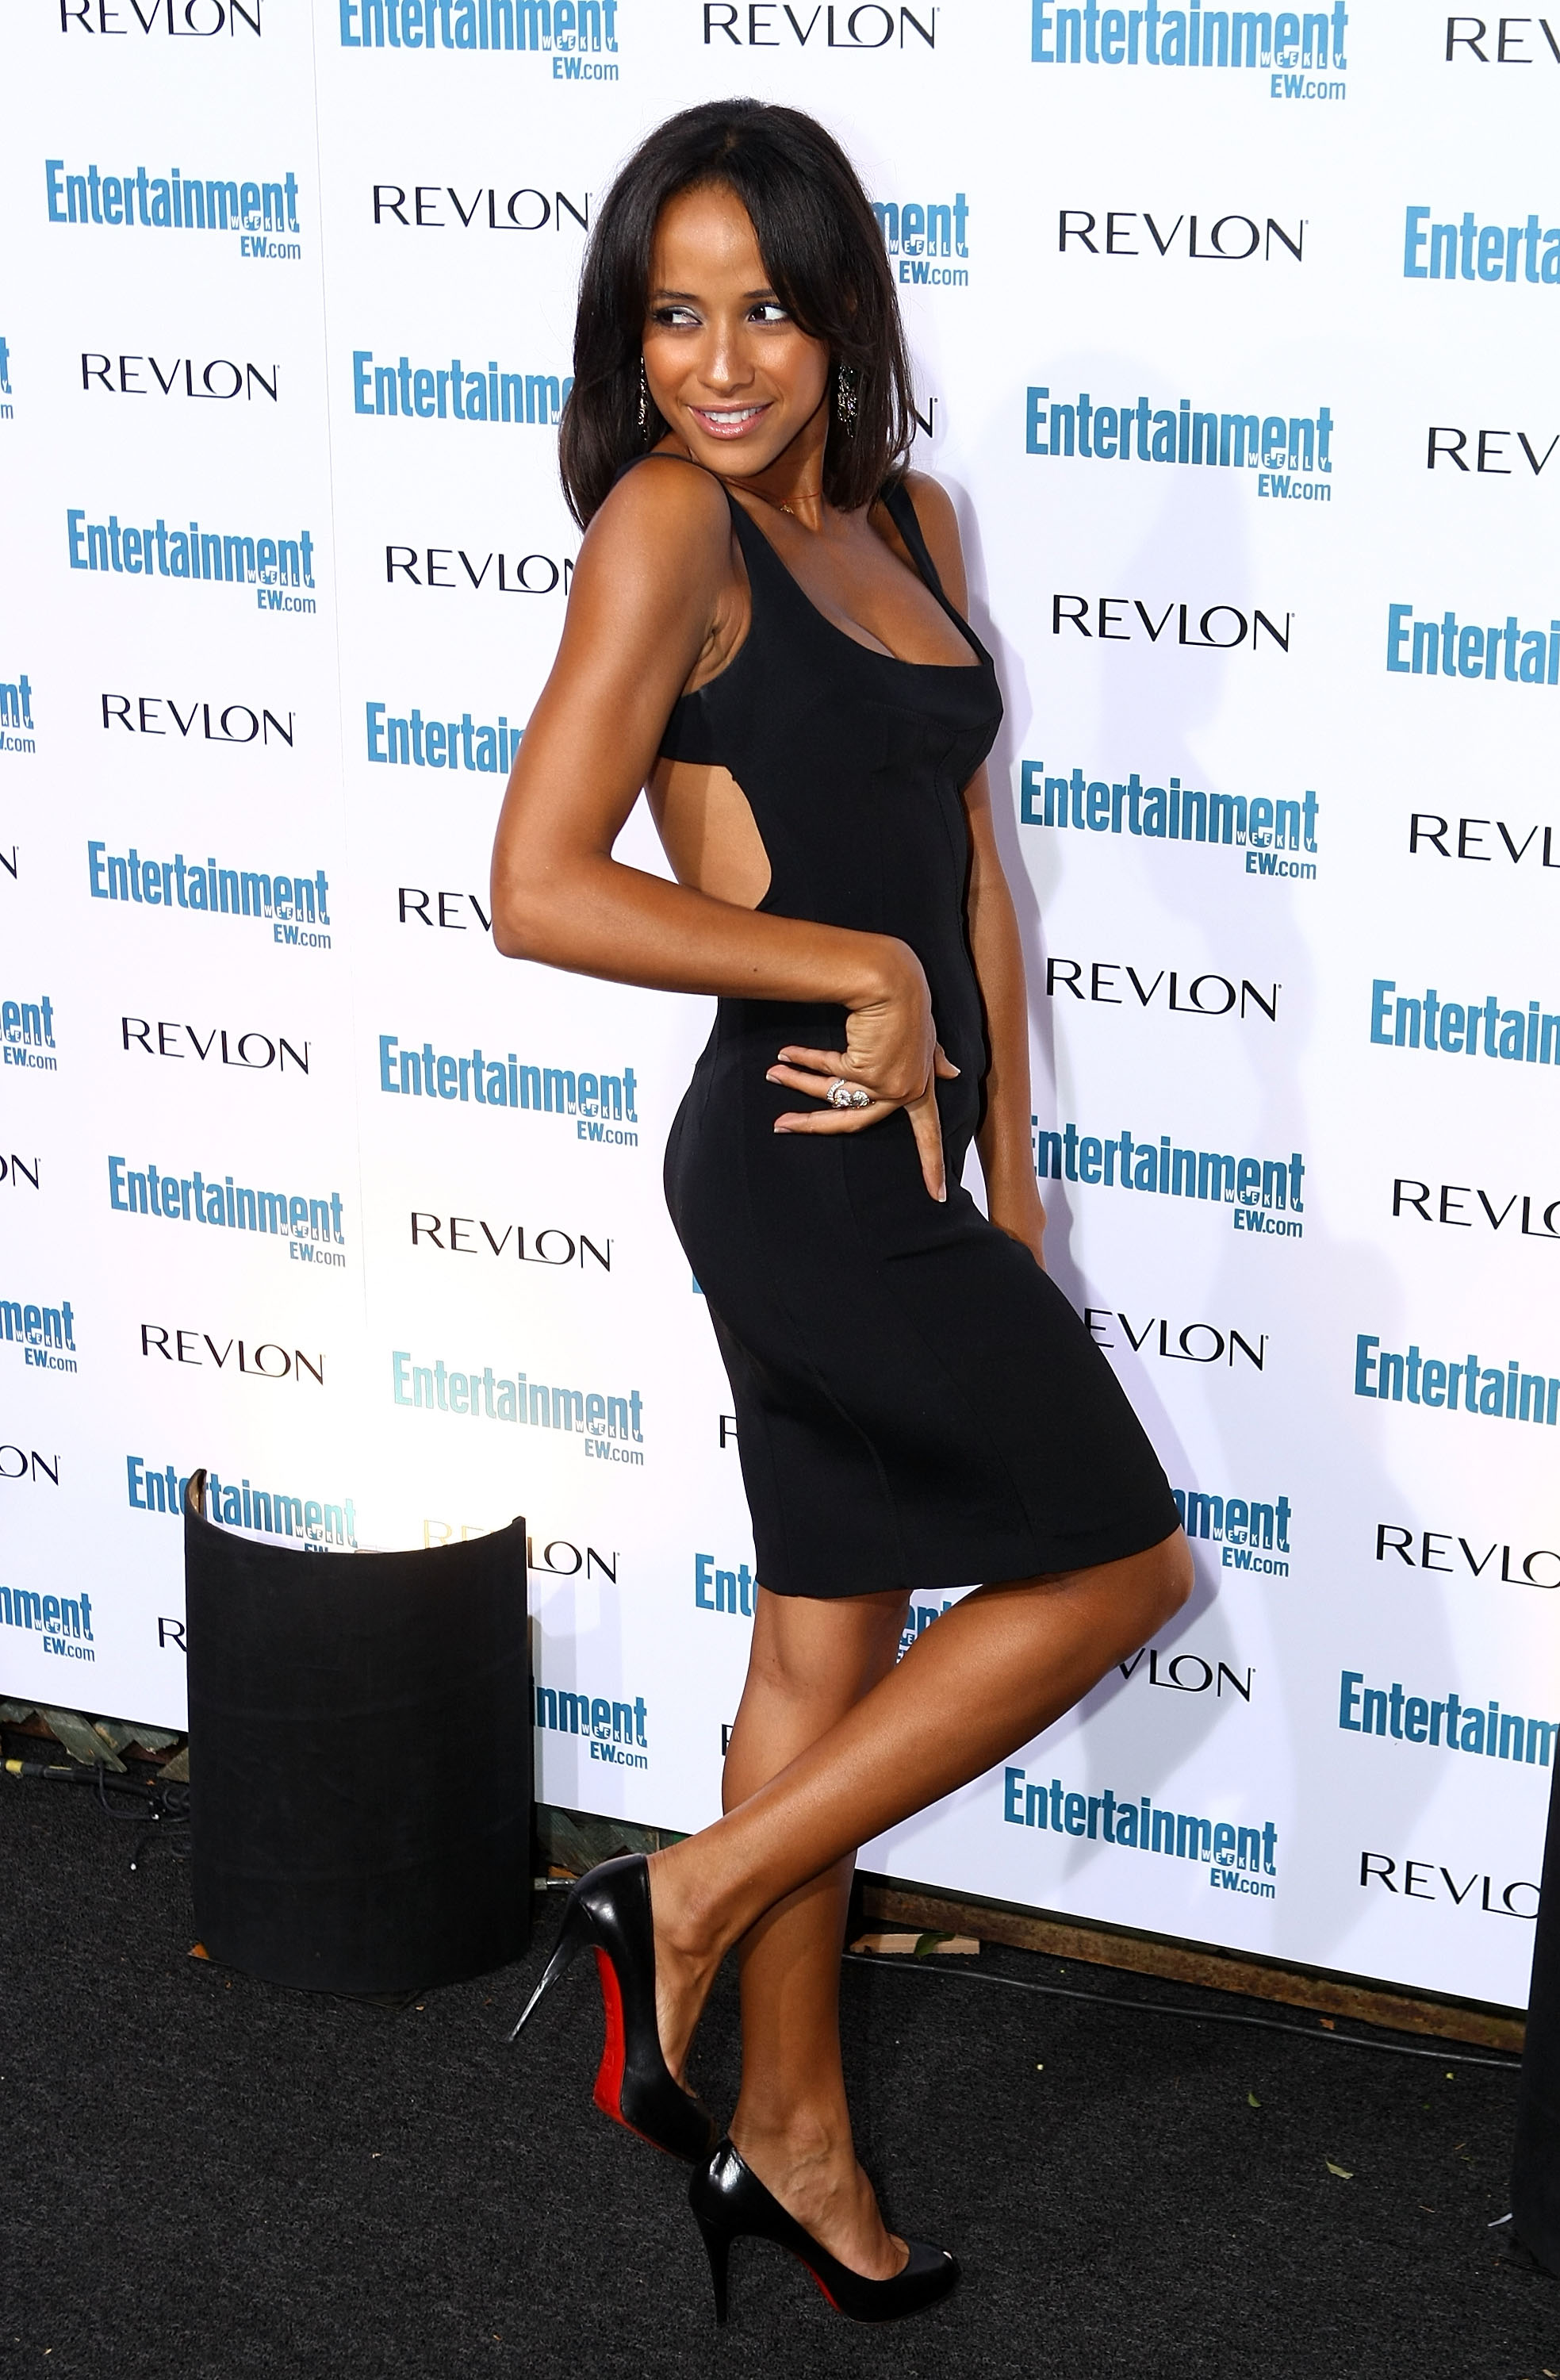 99589_Celebutopia-Dania_Ramirez-Entertainment_Weekly23s_Sixth_Annual_Pre-Emmy_Celebration_party-09_122_411lo.jpg